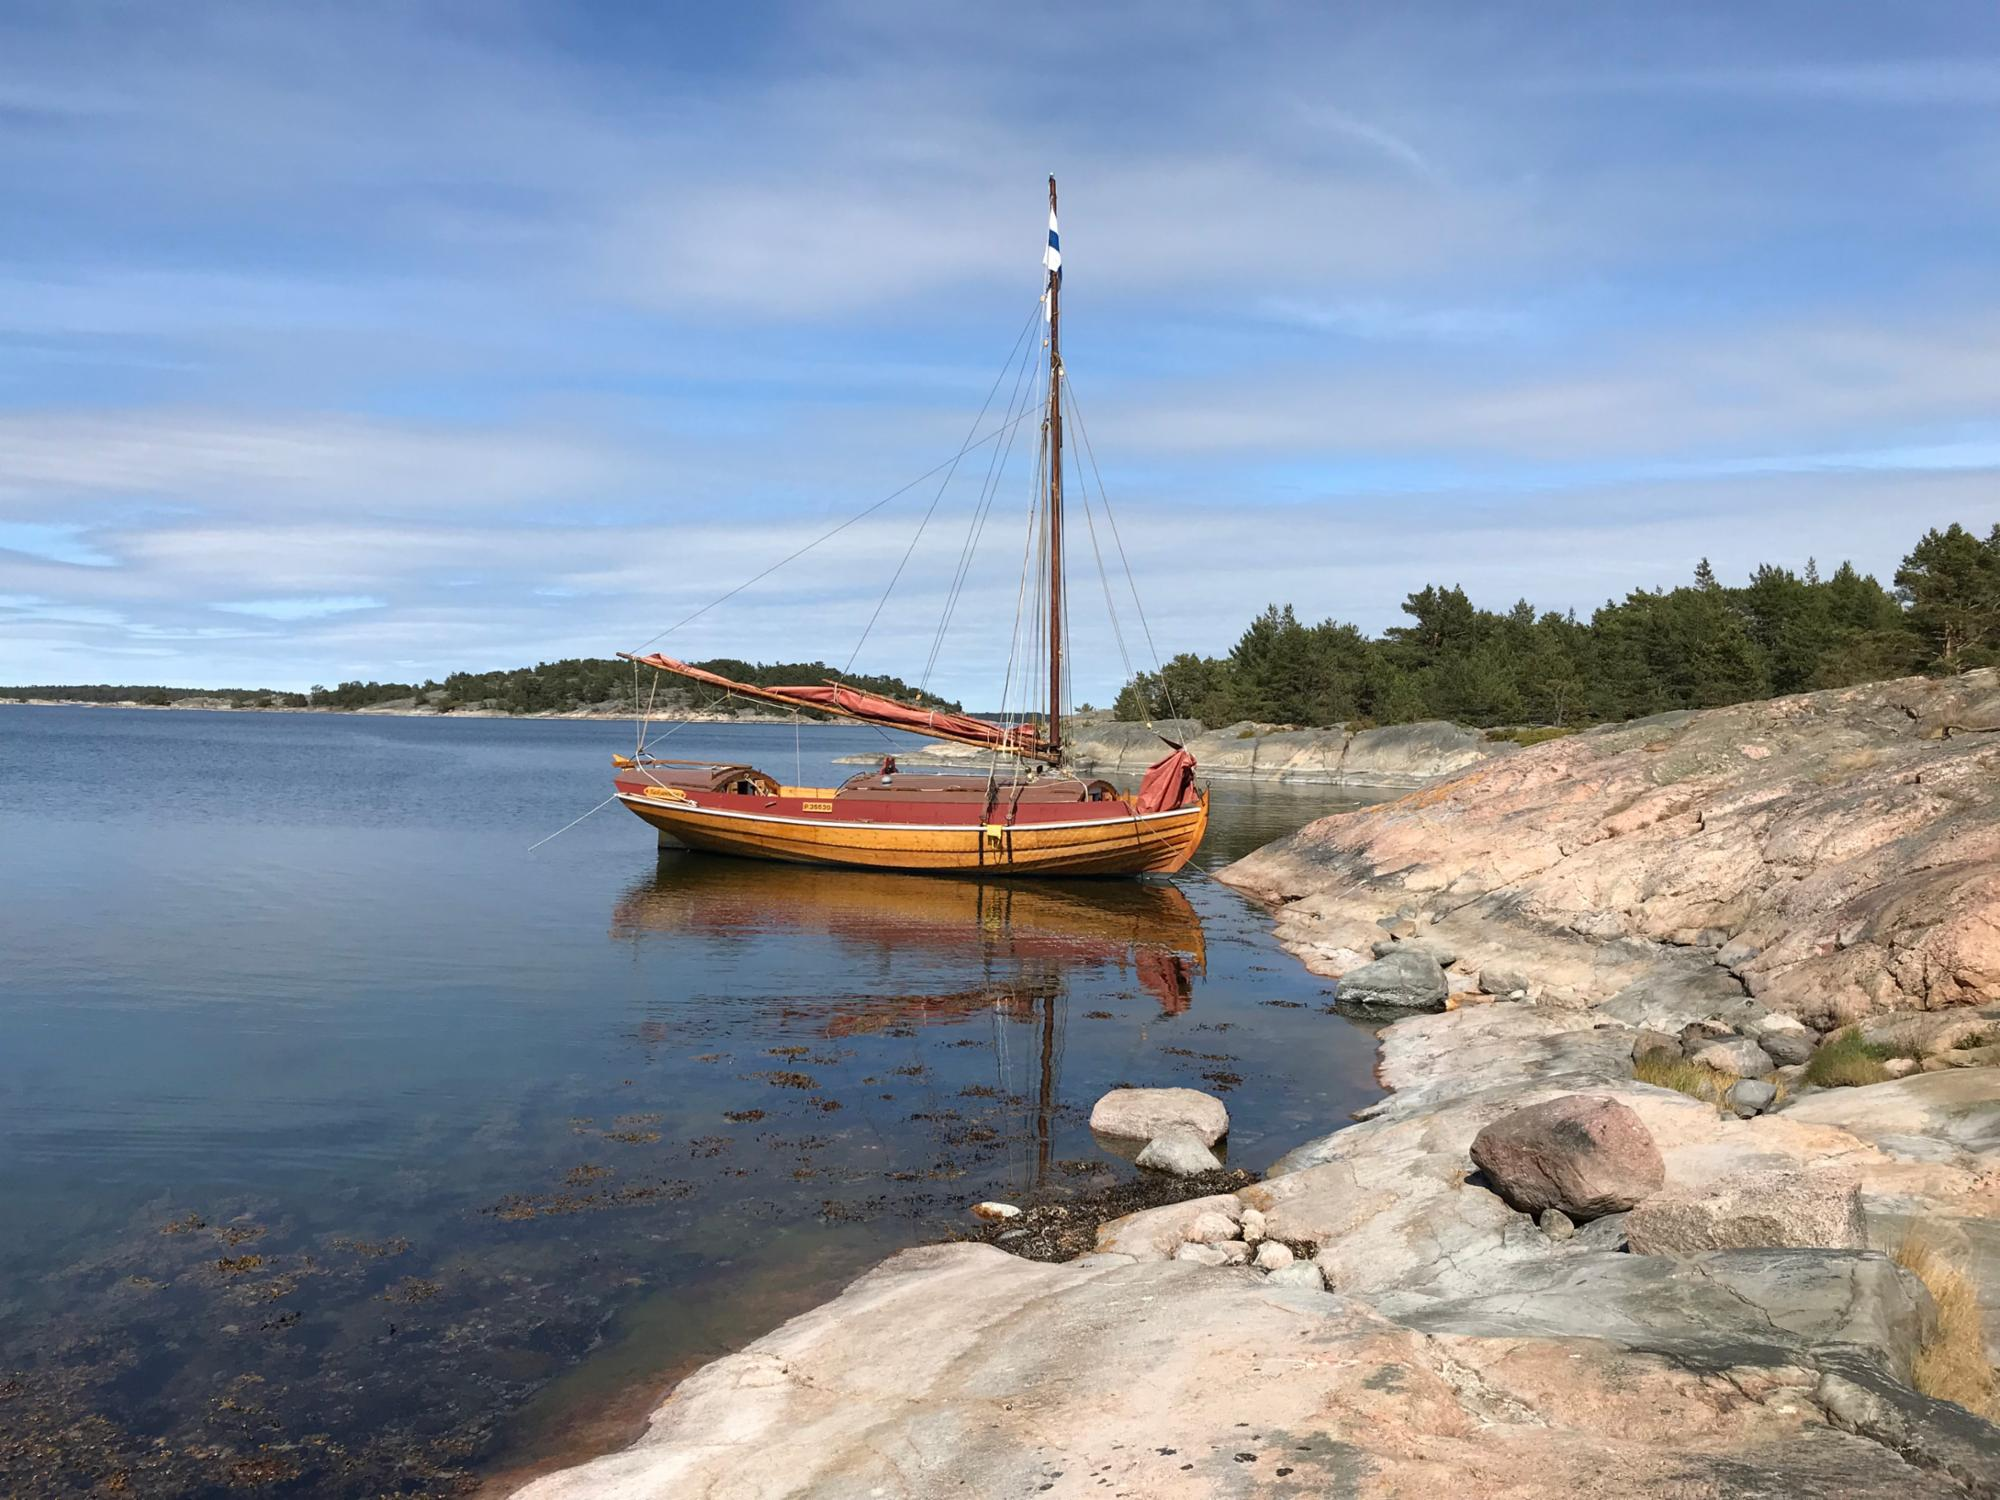 Sailing tour to the Archipelago National Park